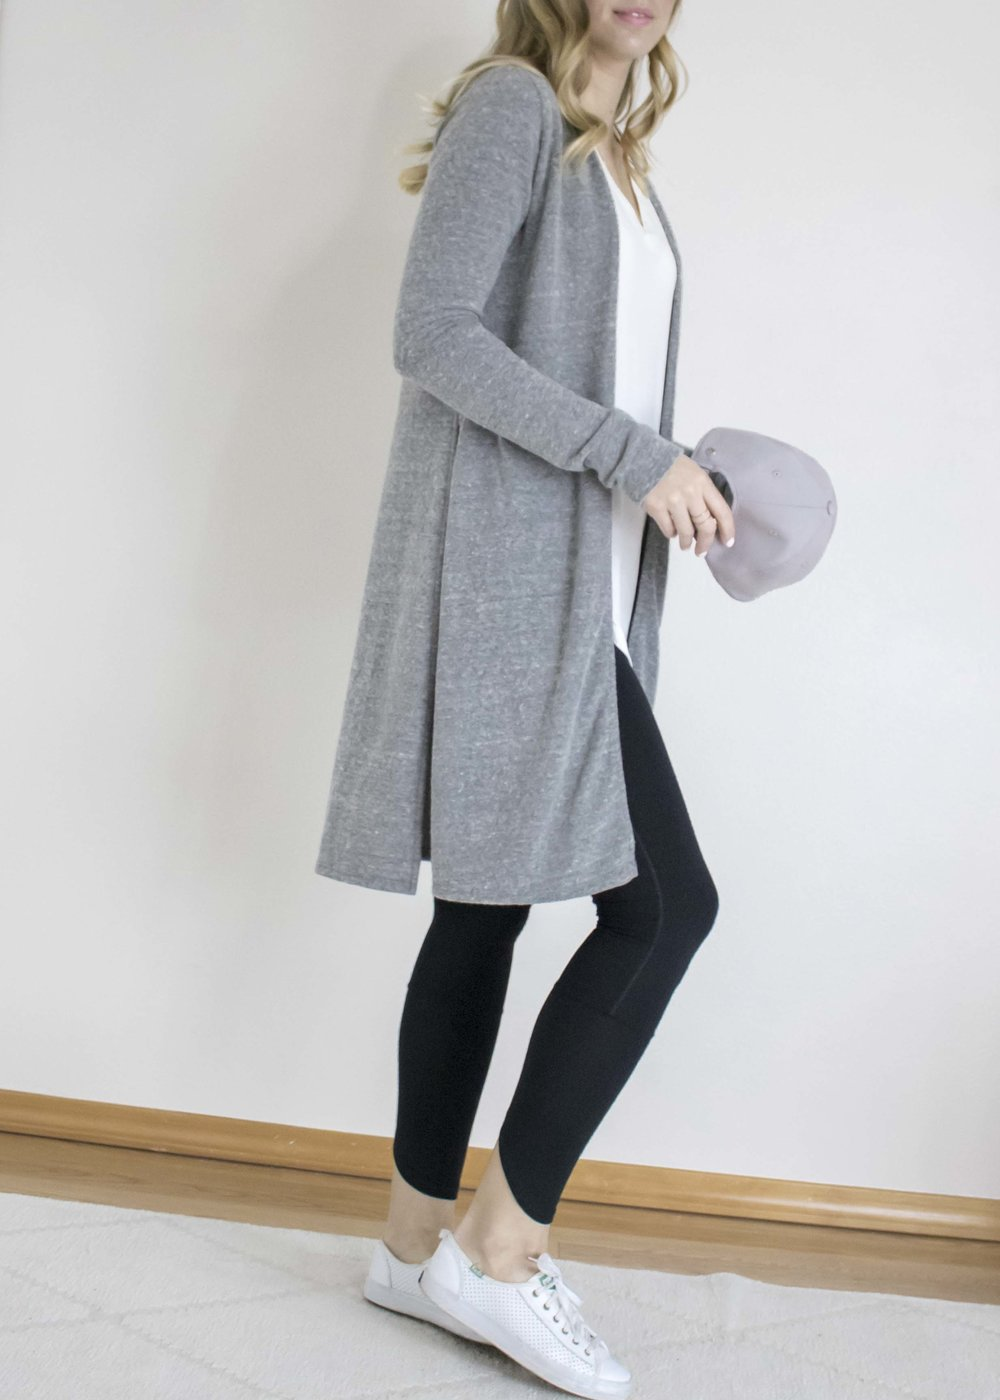 a good cardigan goes a long way. this grey sweater is a slightly heavier weight than the oatmeal colored version; it's just a little bit cozier too, making it perfect for tossing on in the mornings to run an errand or for winding down with in the evening.